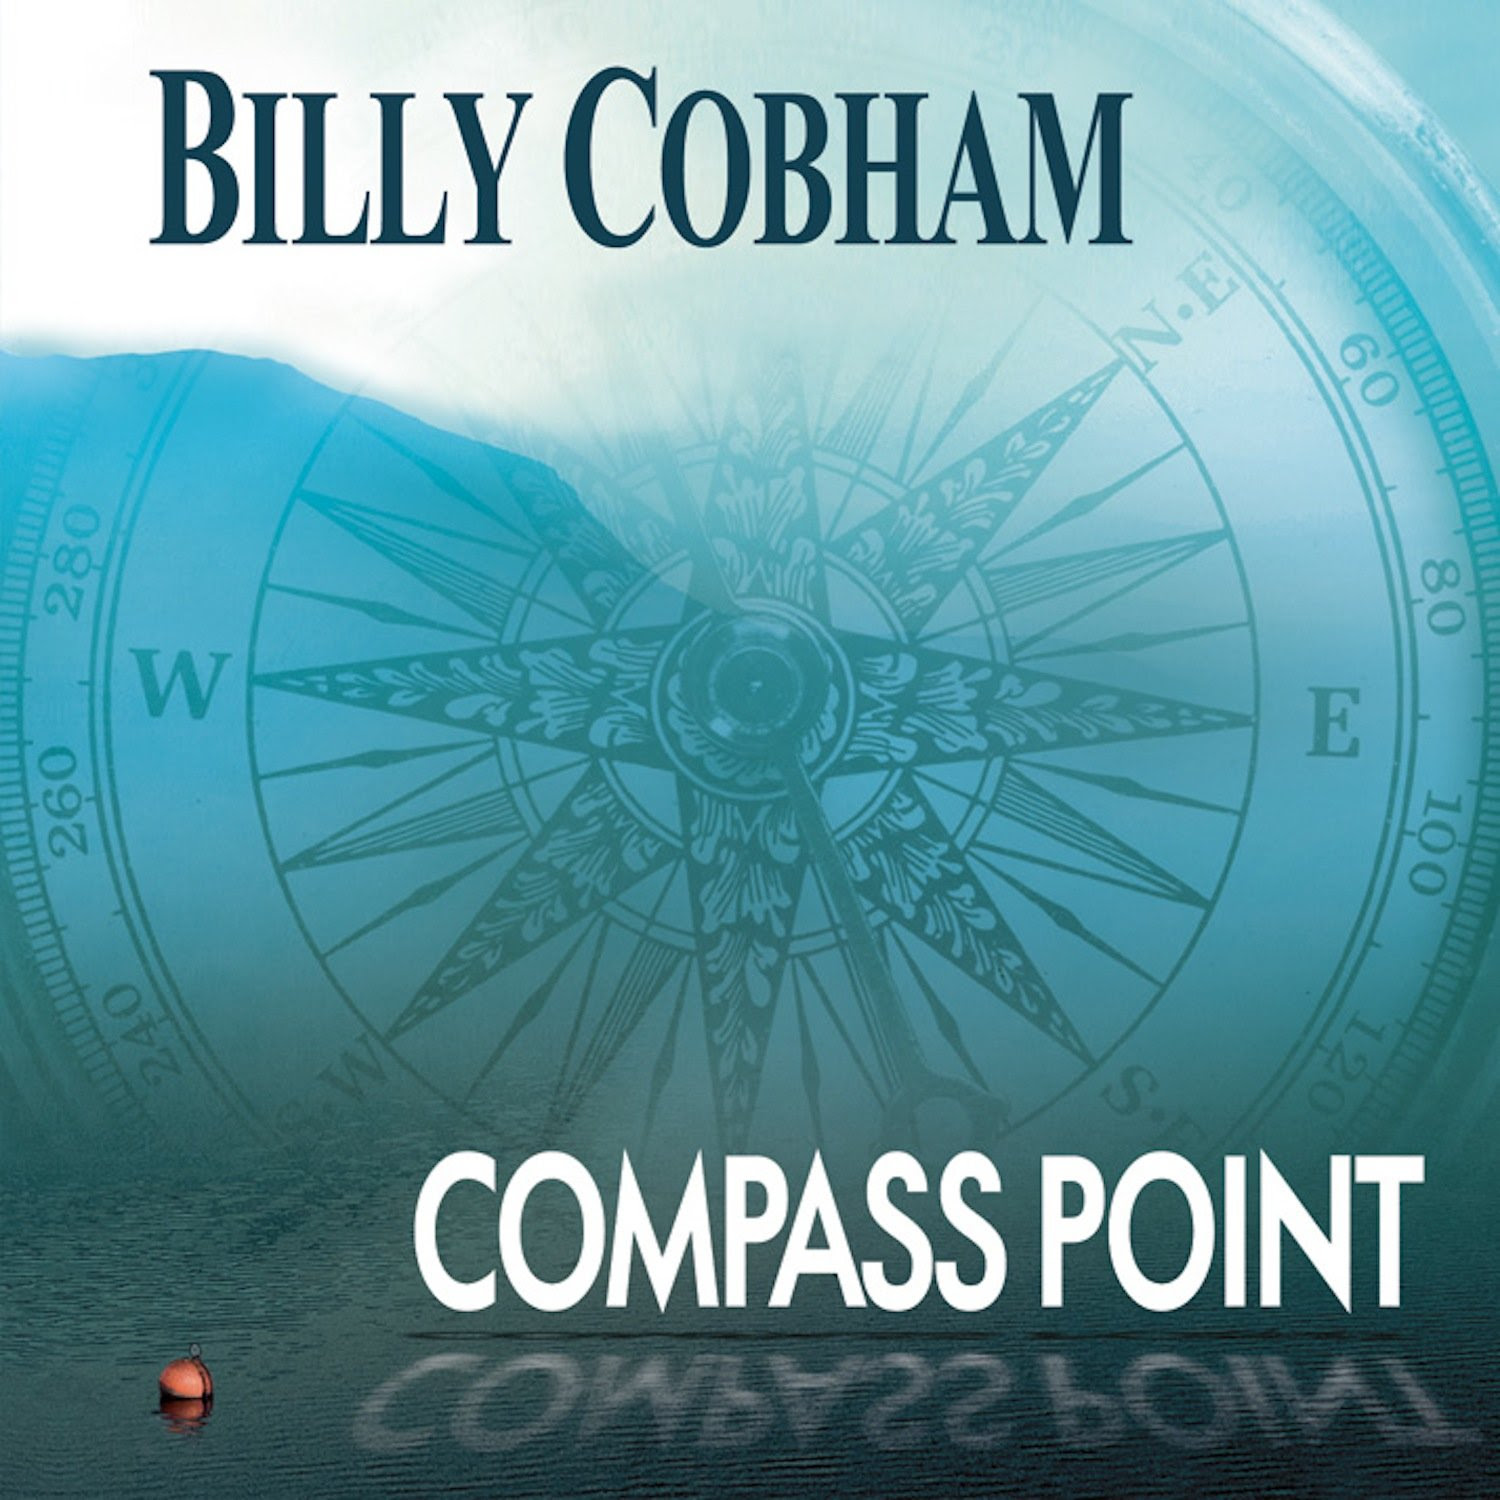 Billy Cobham - Compass Point cover